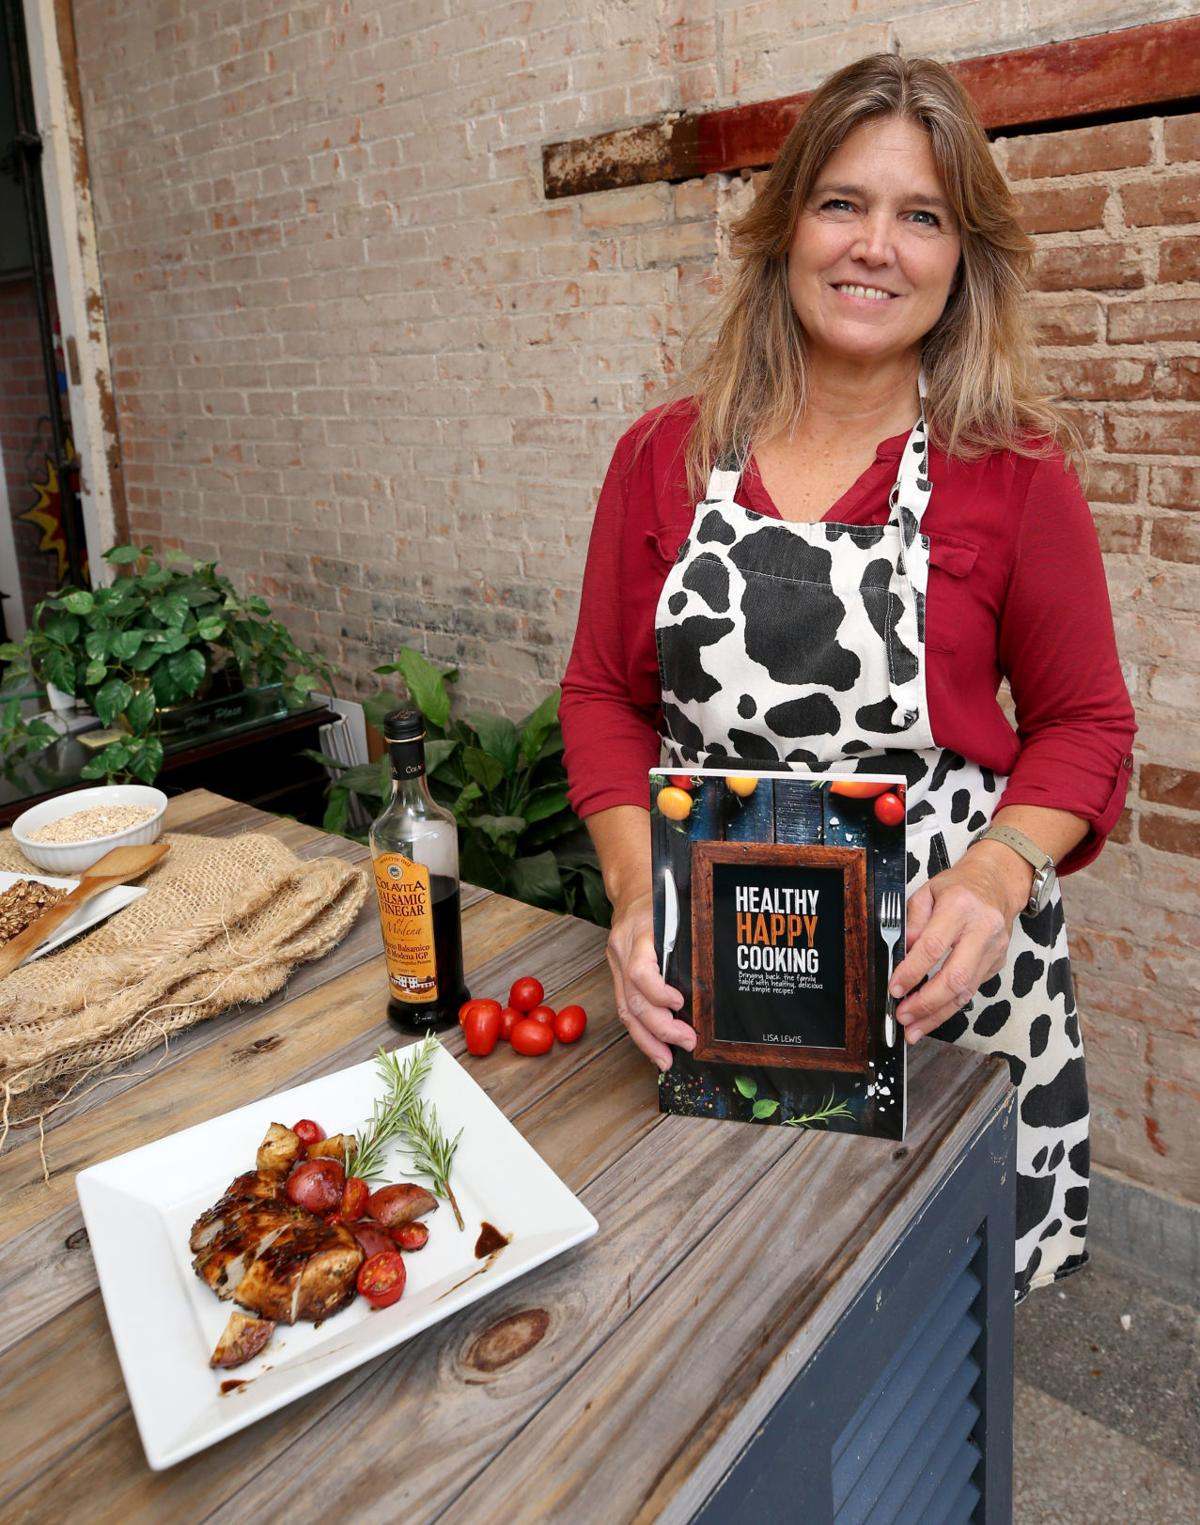 Island author's cookbook focused on easy, nutritious meals